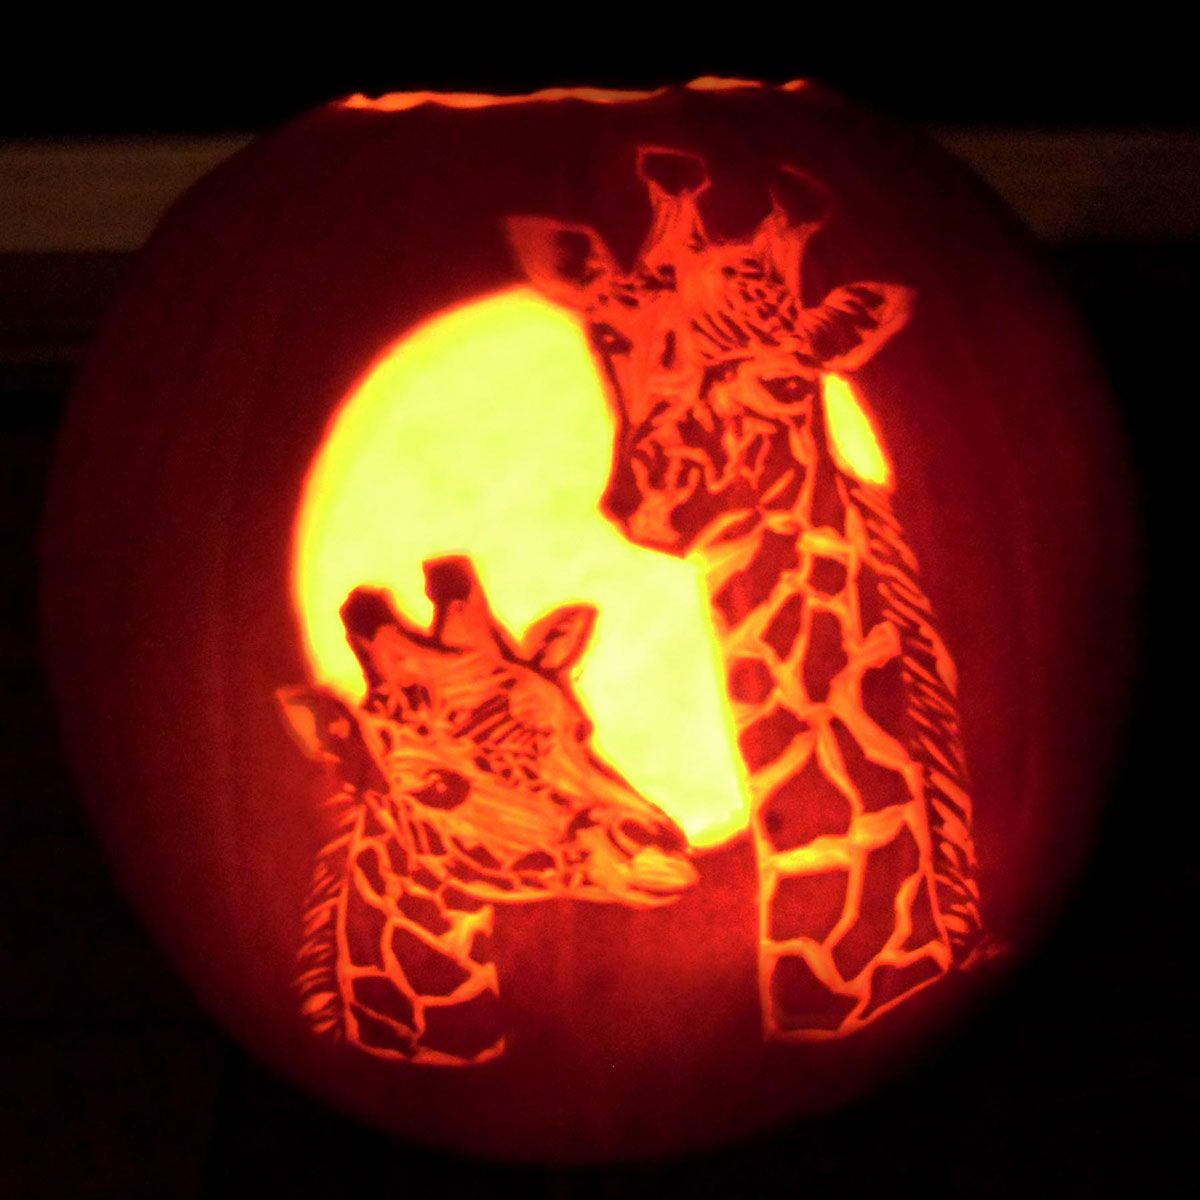 the gallery for --> elephant pumpkin carving | halloween